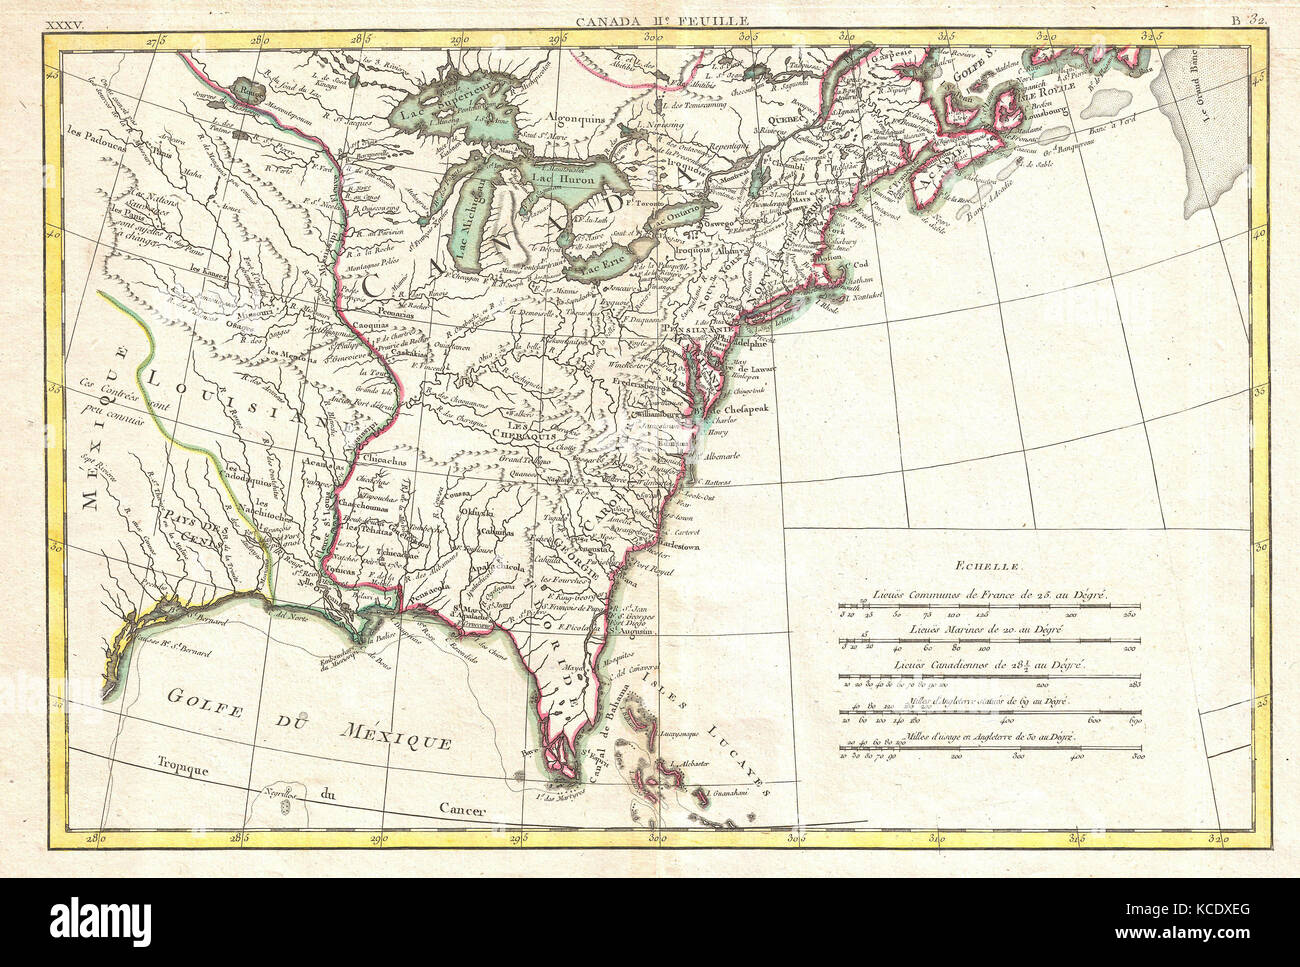 North Louisiana Map.1776 Bonne Map Of Louisiana And The British Colonies In North Stock